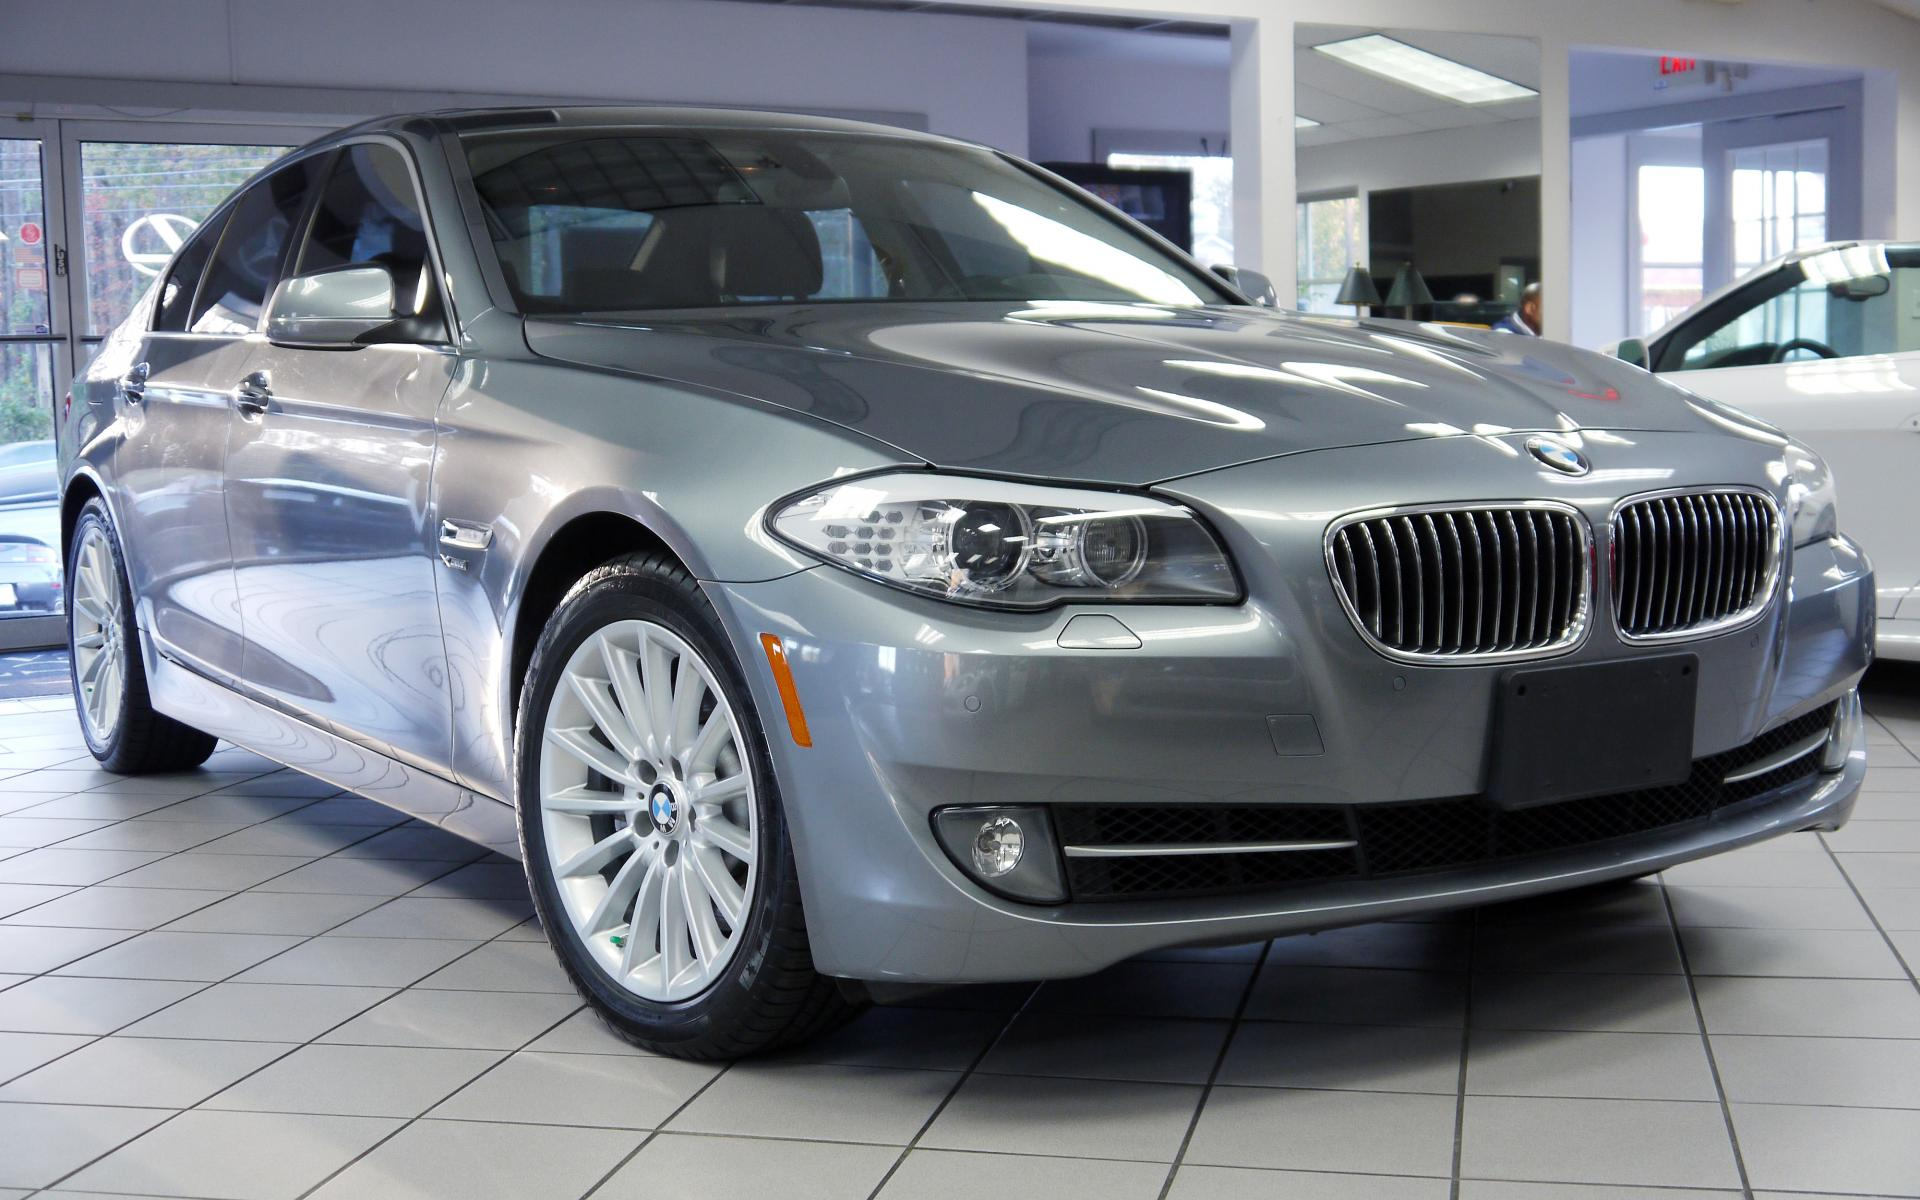 used 2011 bmw 5 series 535i xdrive marietta ga. Black Bedroom Furniture Sets. Home Design Ideas